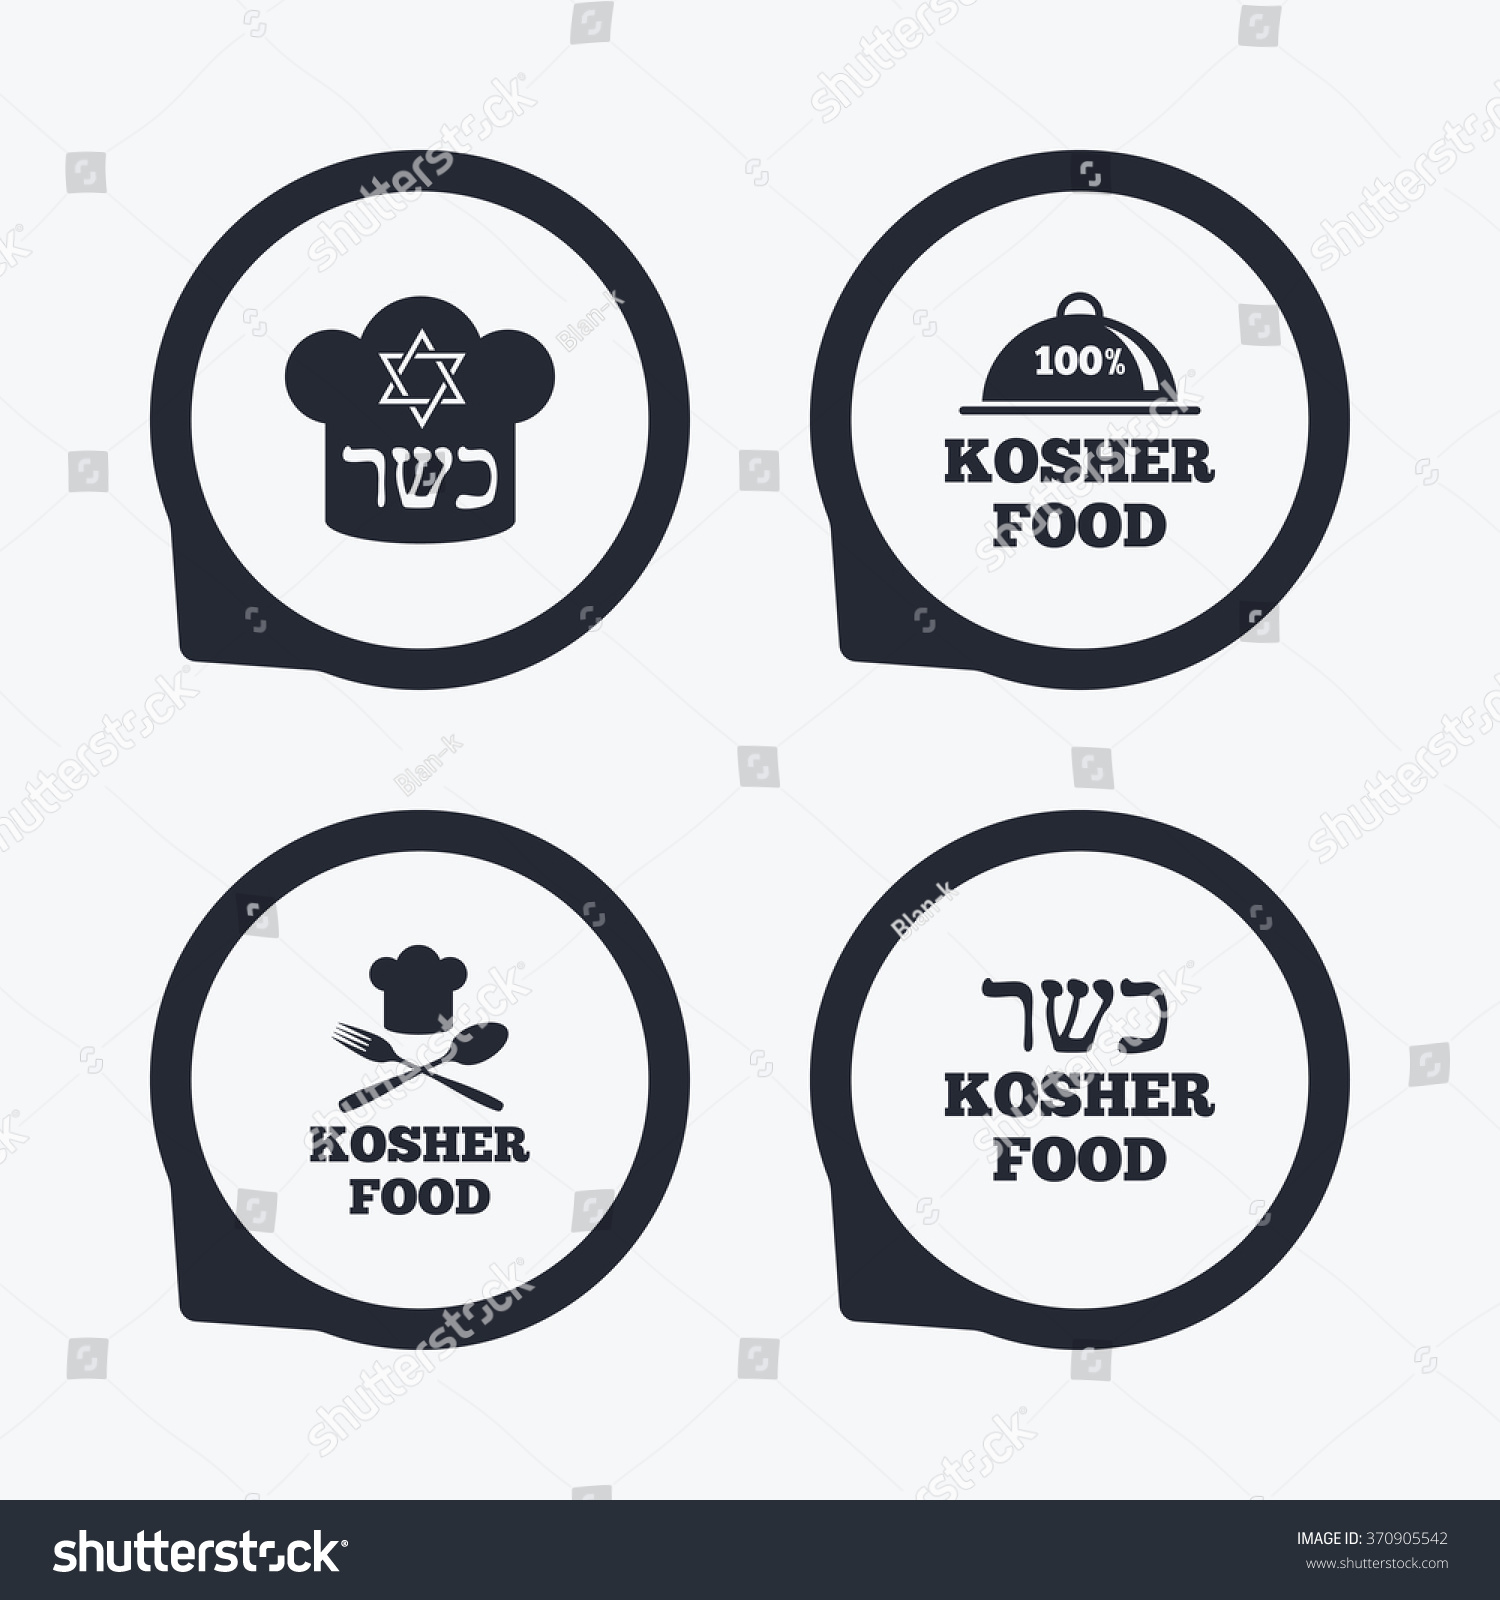 Kosher Food Product Icons Chef Hat Stock Vector 370905542 Shutterstock